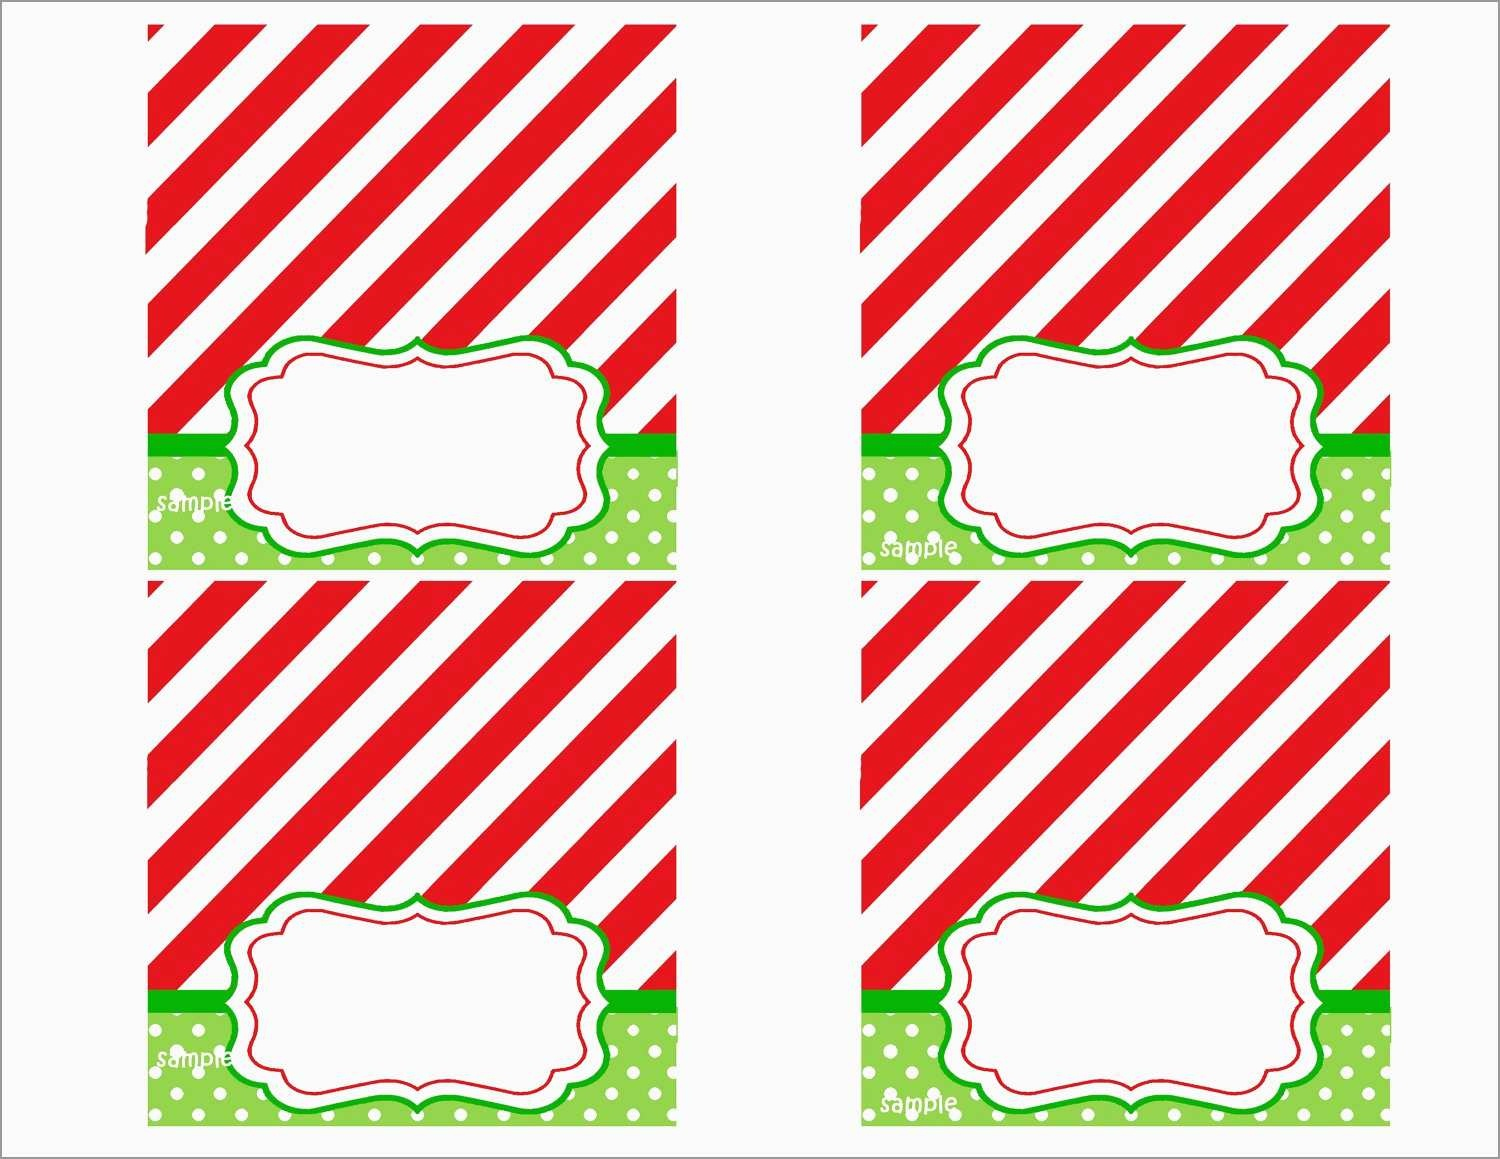 Awesome Free Printable Christmas Table Place Cards Template | Best - Free Printable Christmas Table Place Cards Template